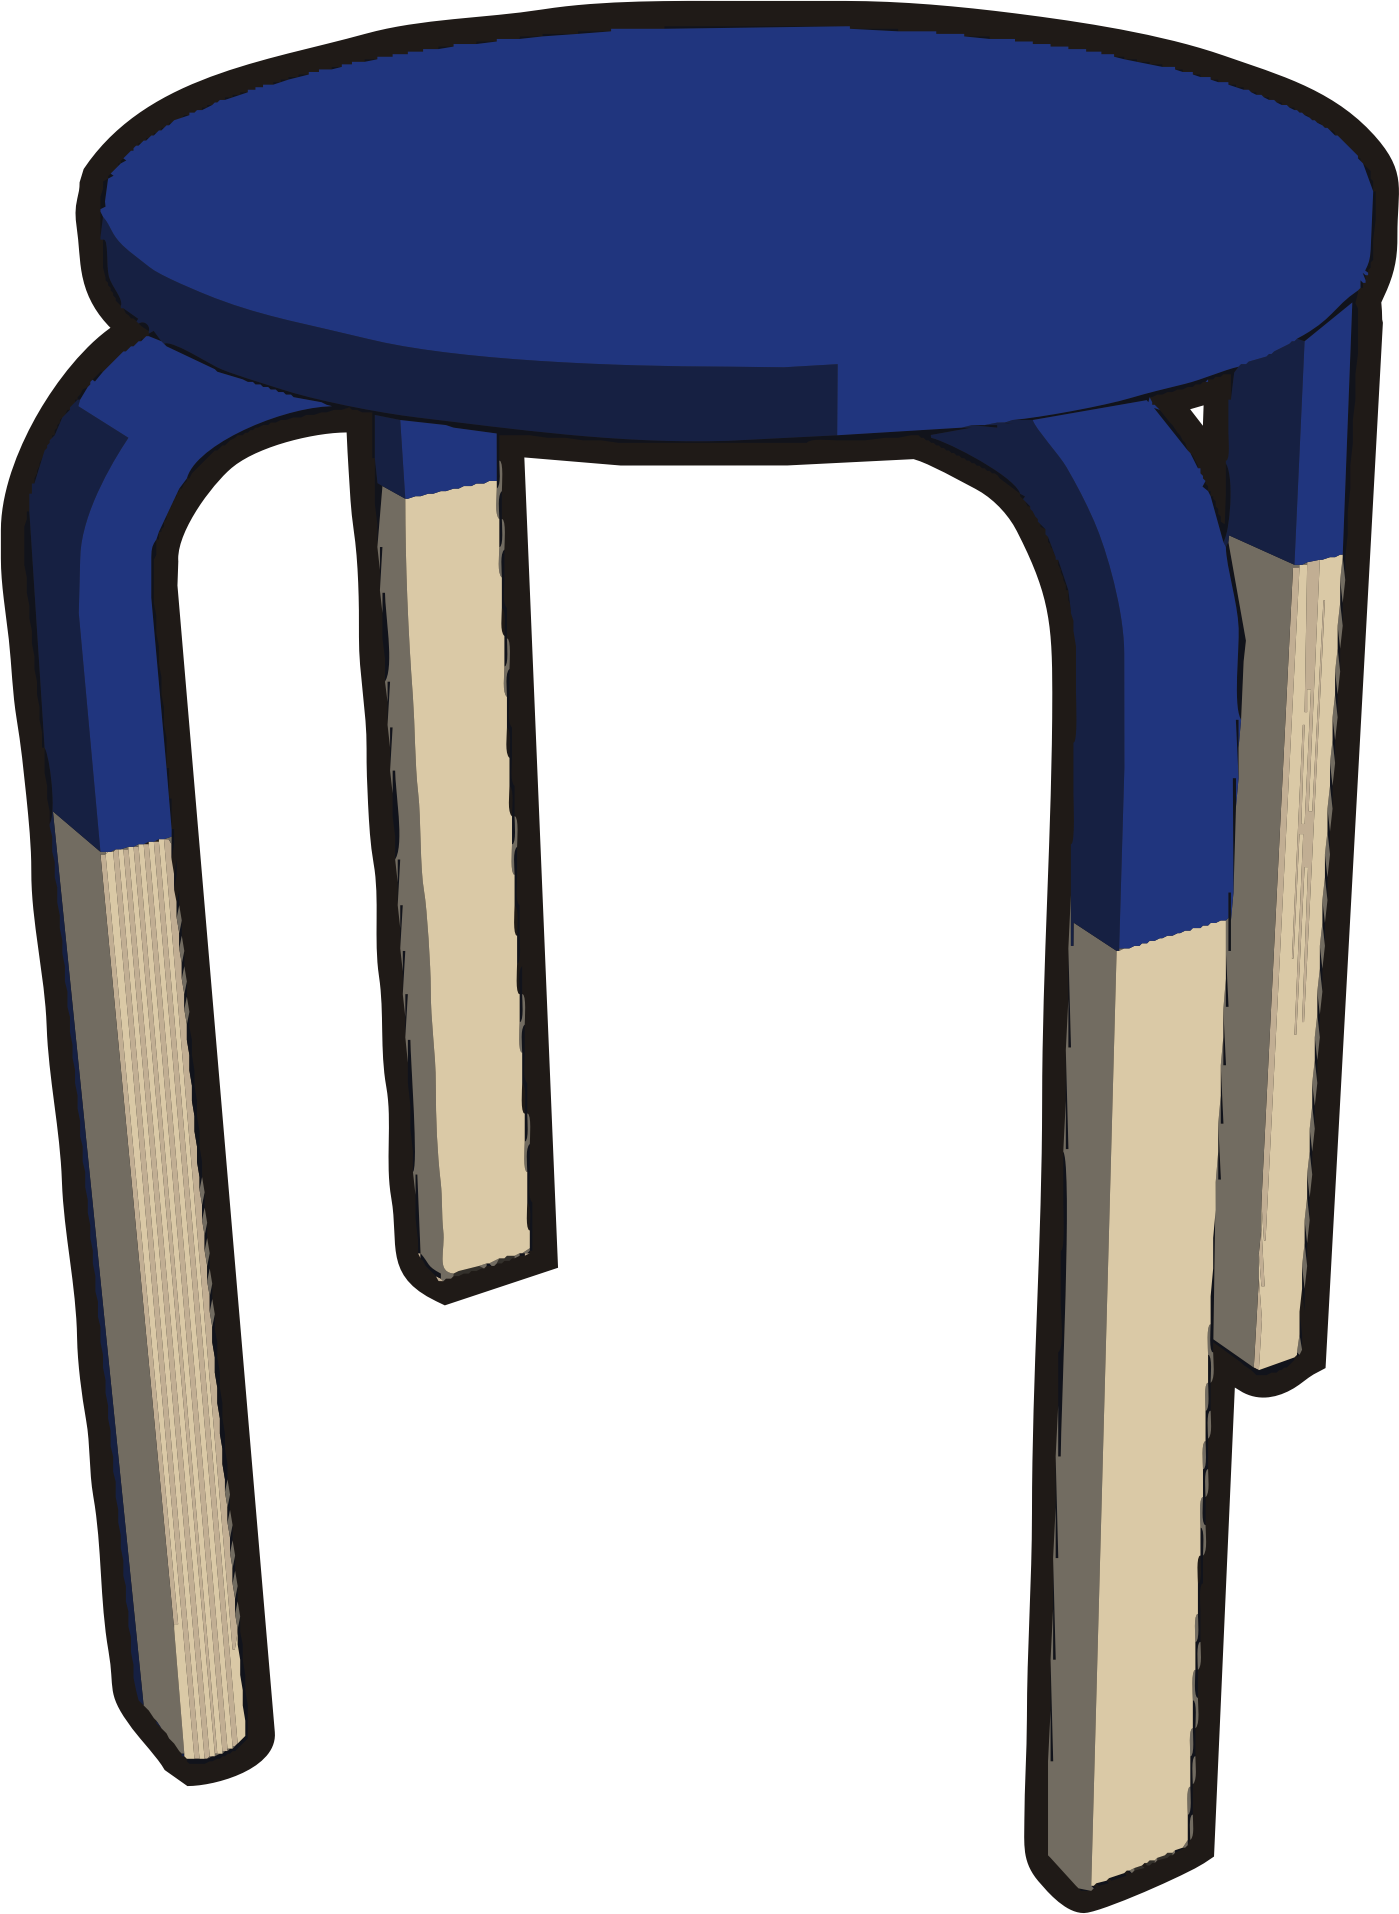 clipart ikea stuff frosta stool half blue navy. Black Bedroom Furniture Sets. Home Design Ideas